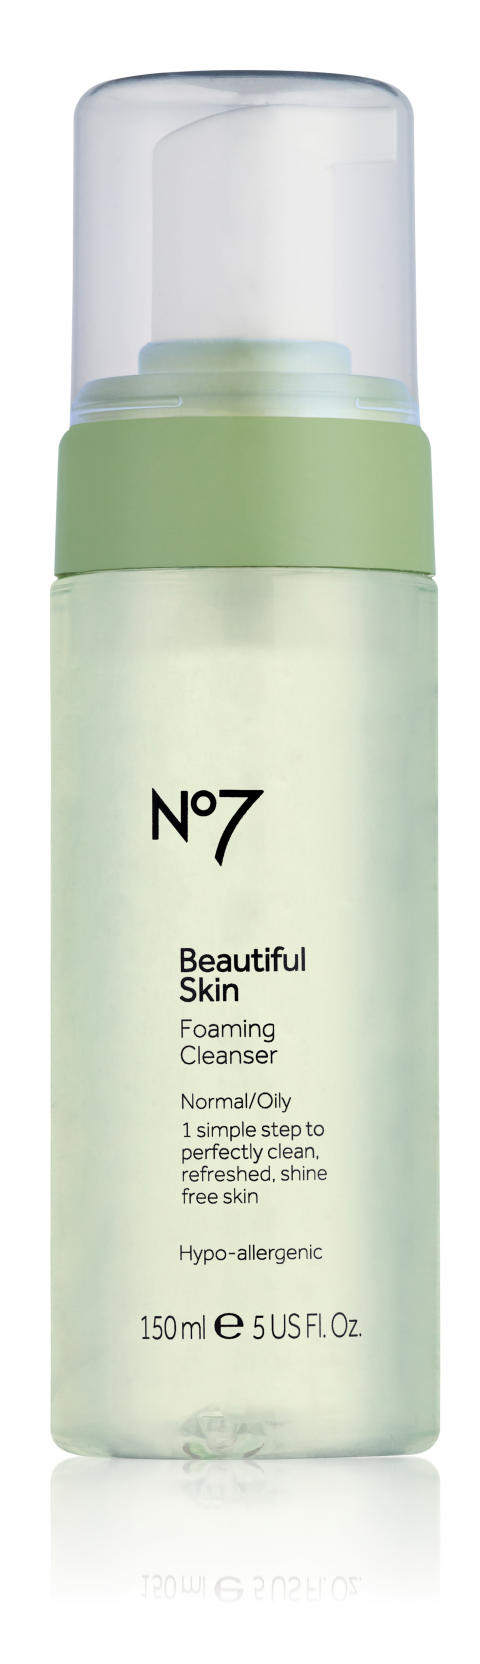 No7 Beautiful skin Foaming cleanser